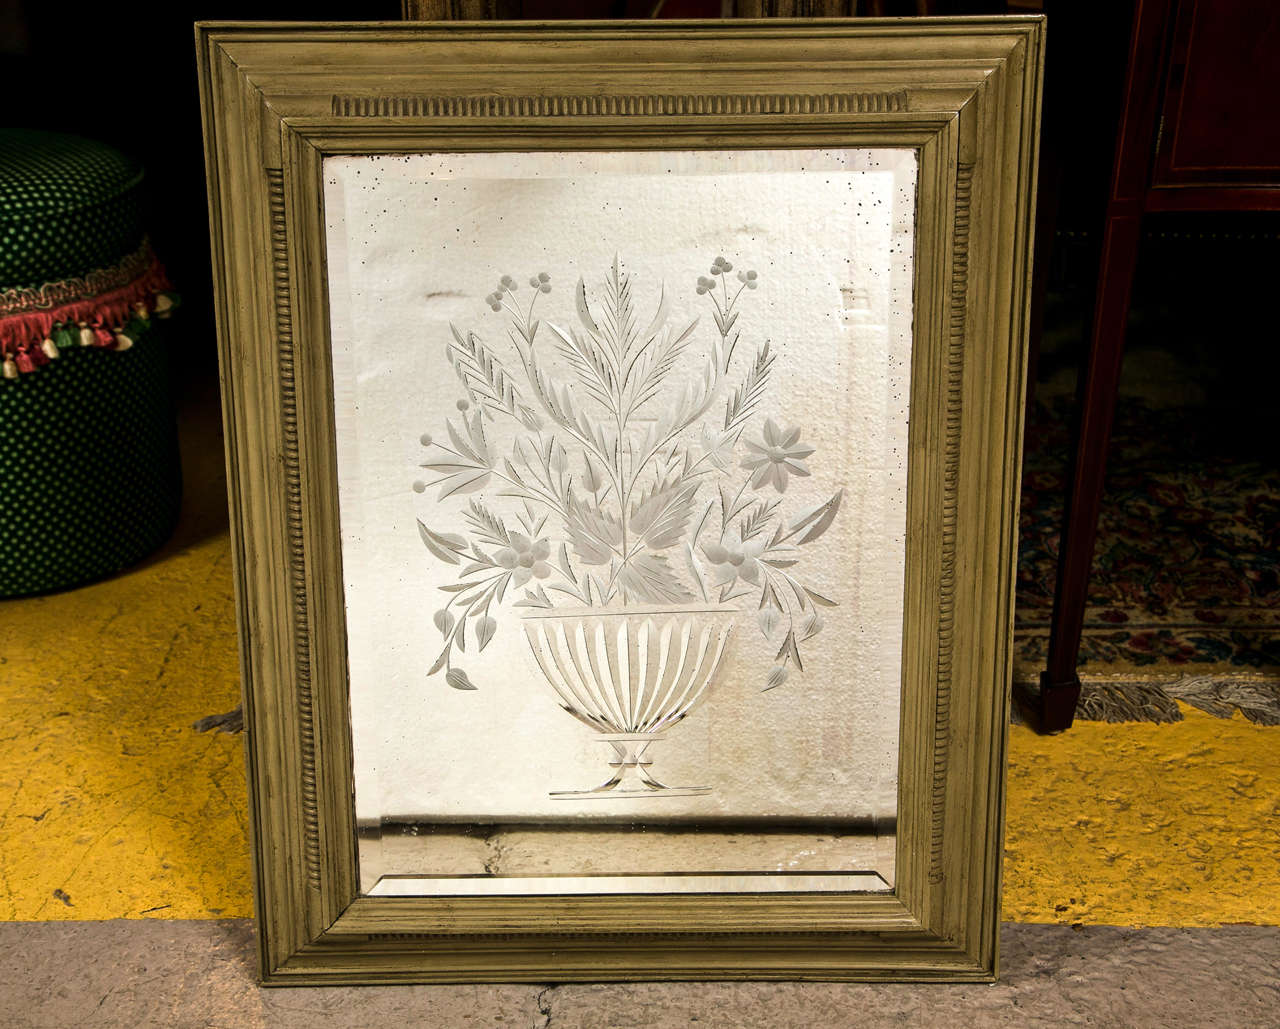 Decorative framed etching mirror for sale at 1stdibs for Decorative wall mirrors for sale